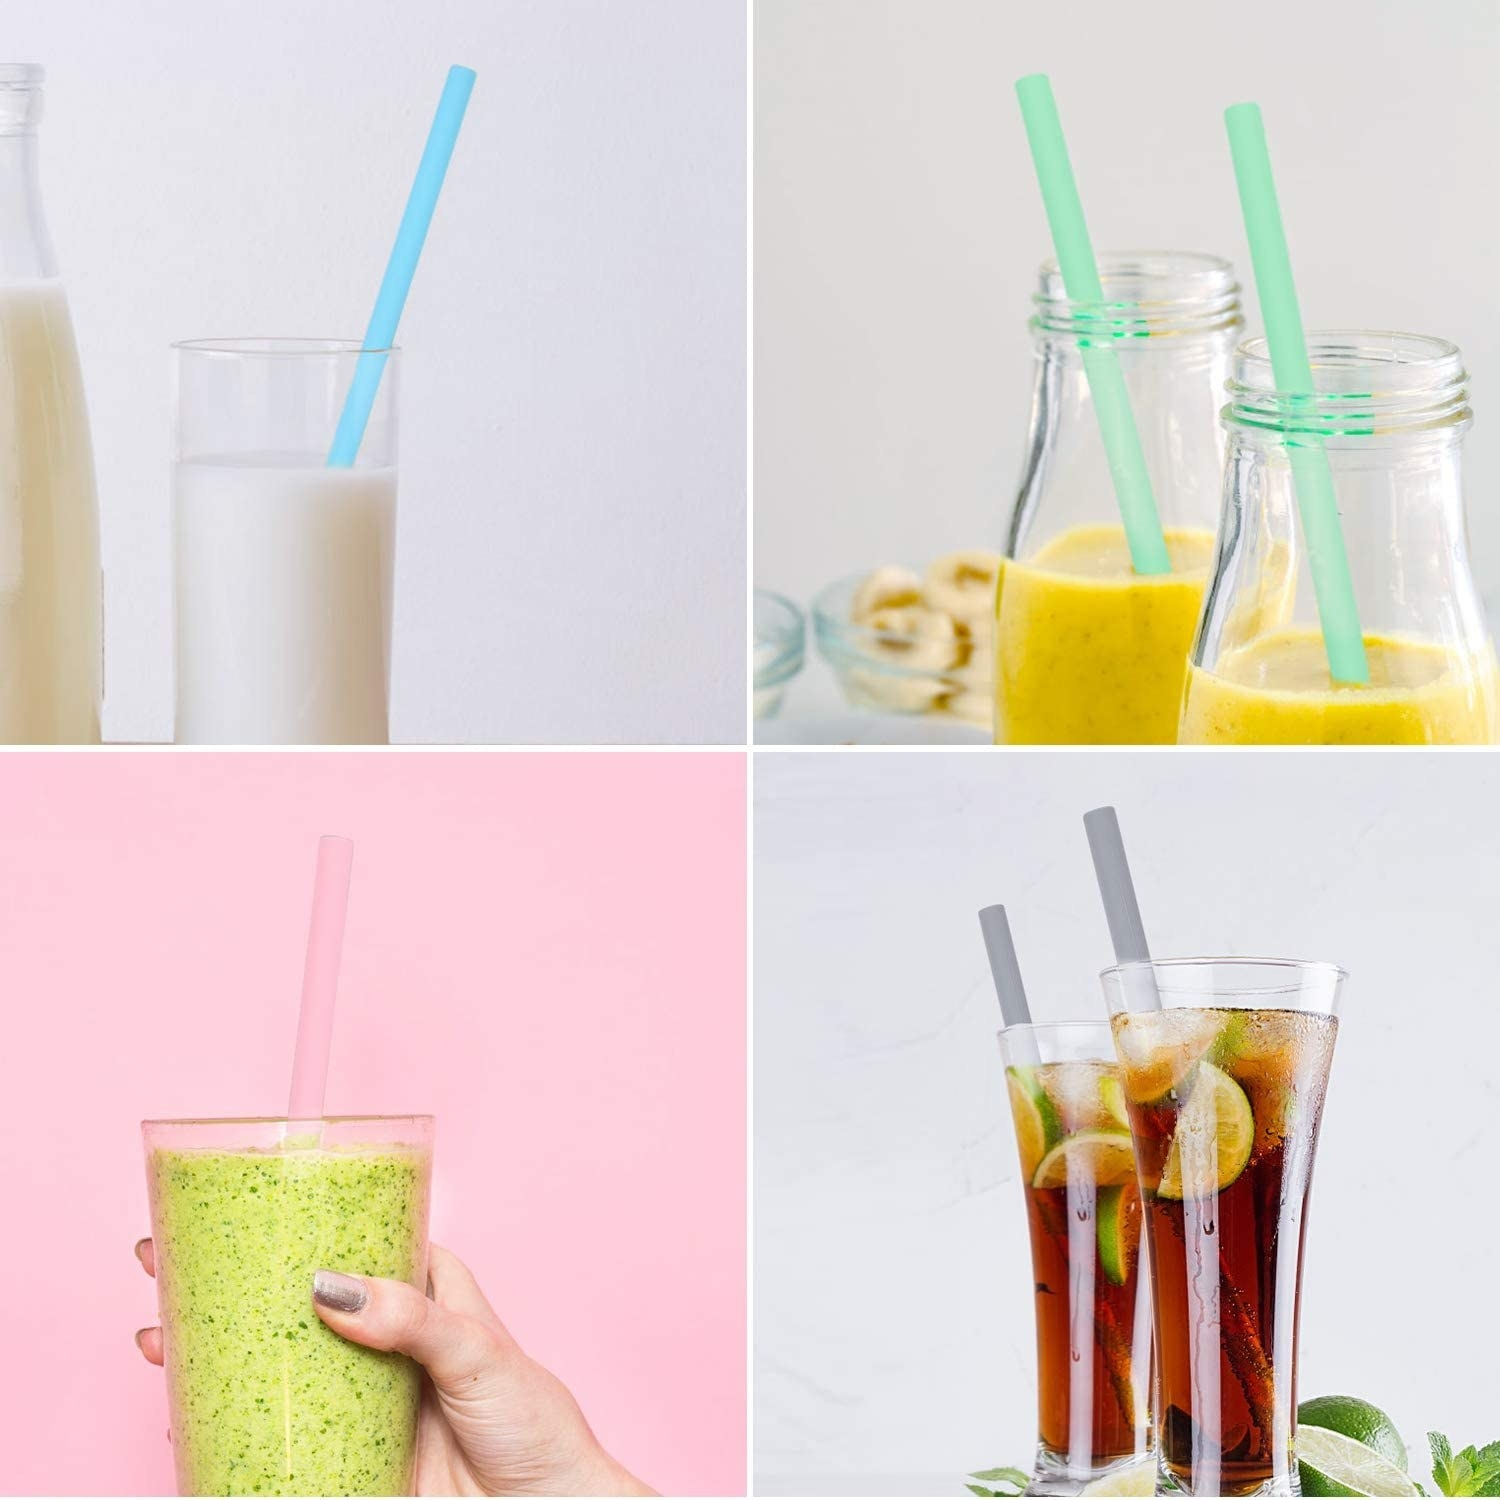 The colorful straws being used in smoothies, milk, and iced tea